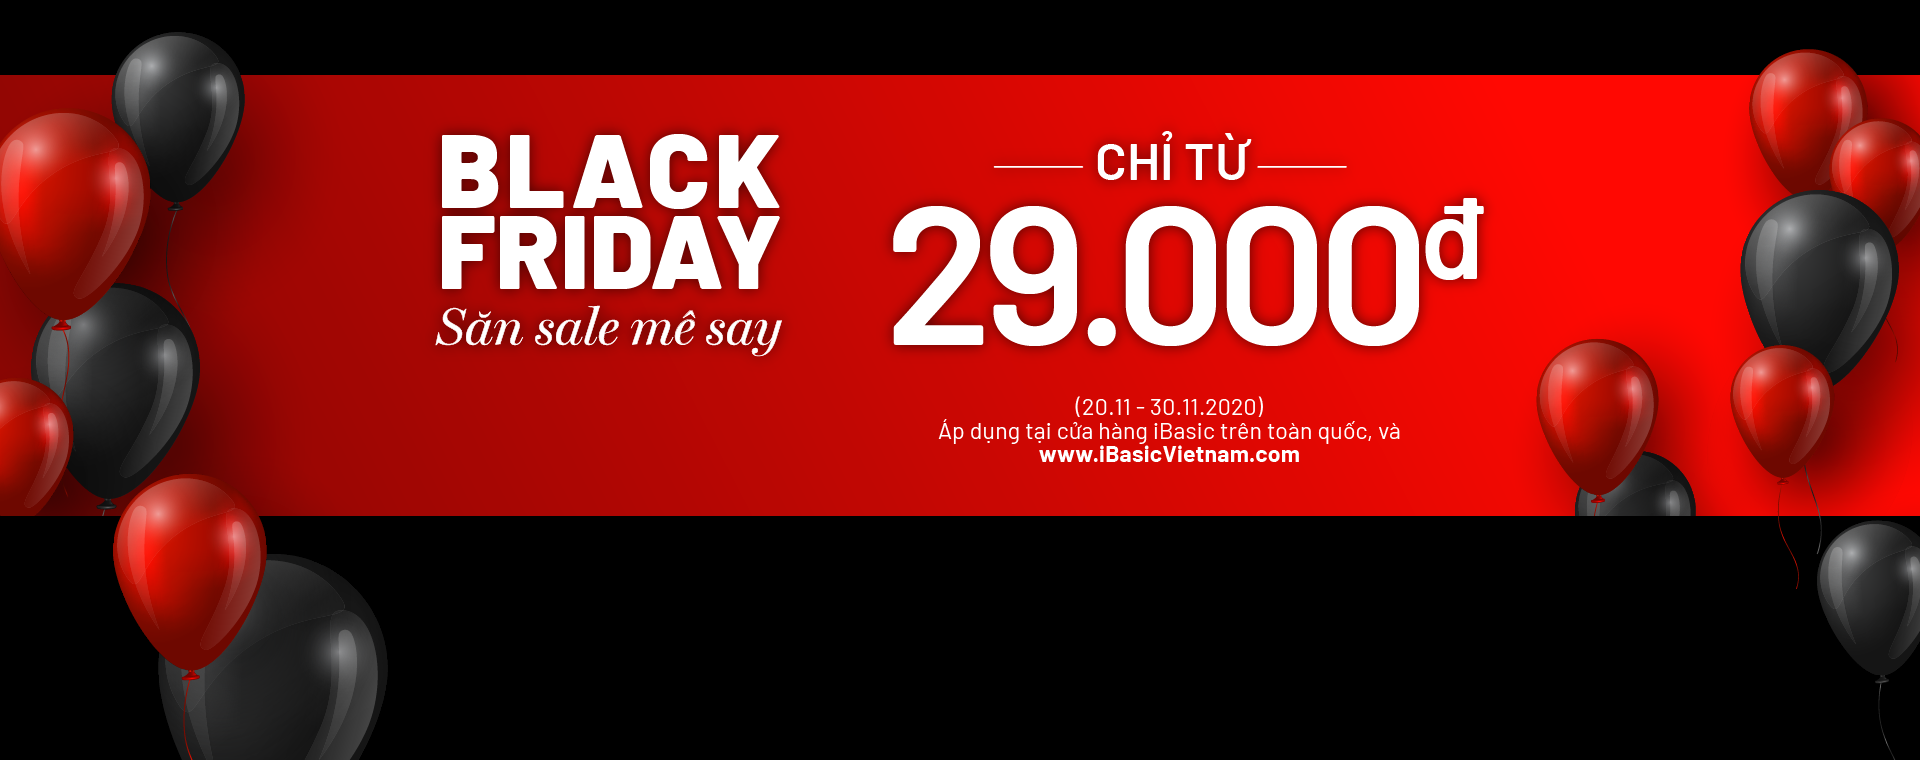 blackfriday_001_banner_img